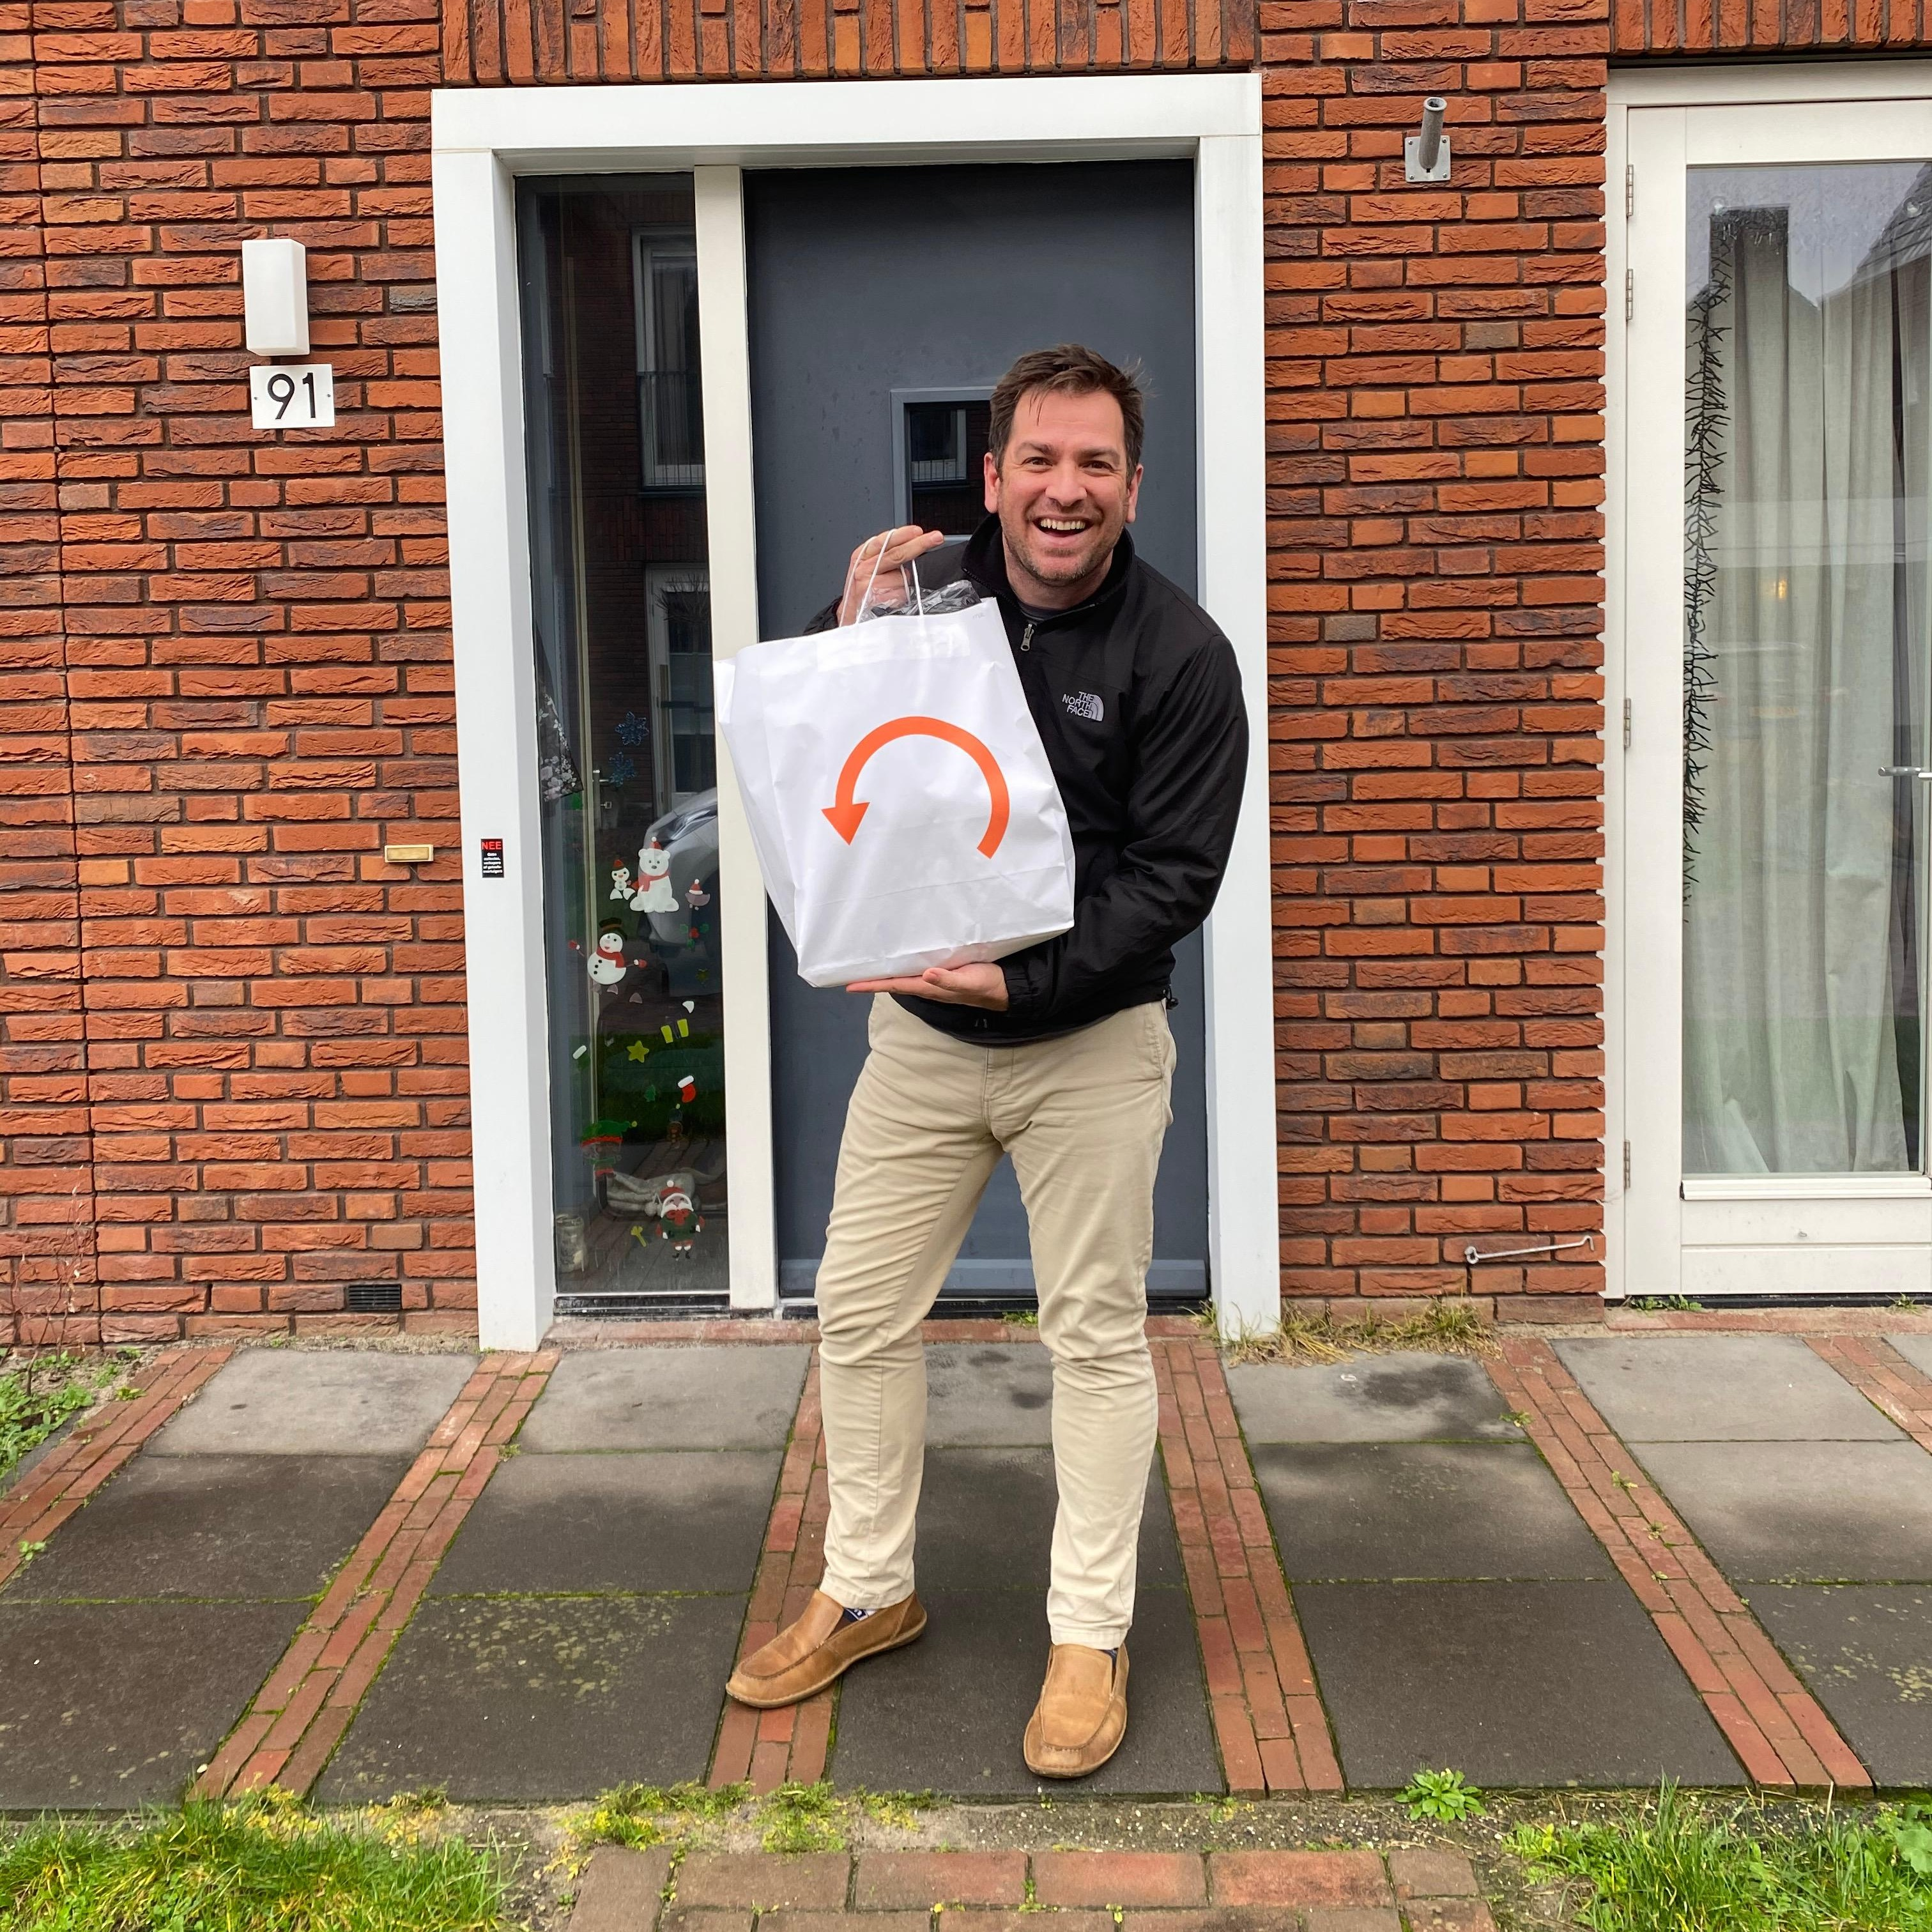 Netherlands Gifts